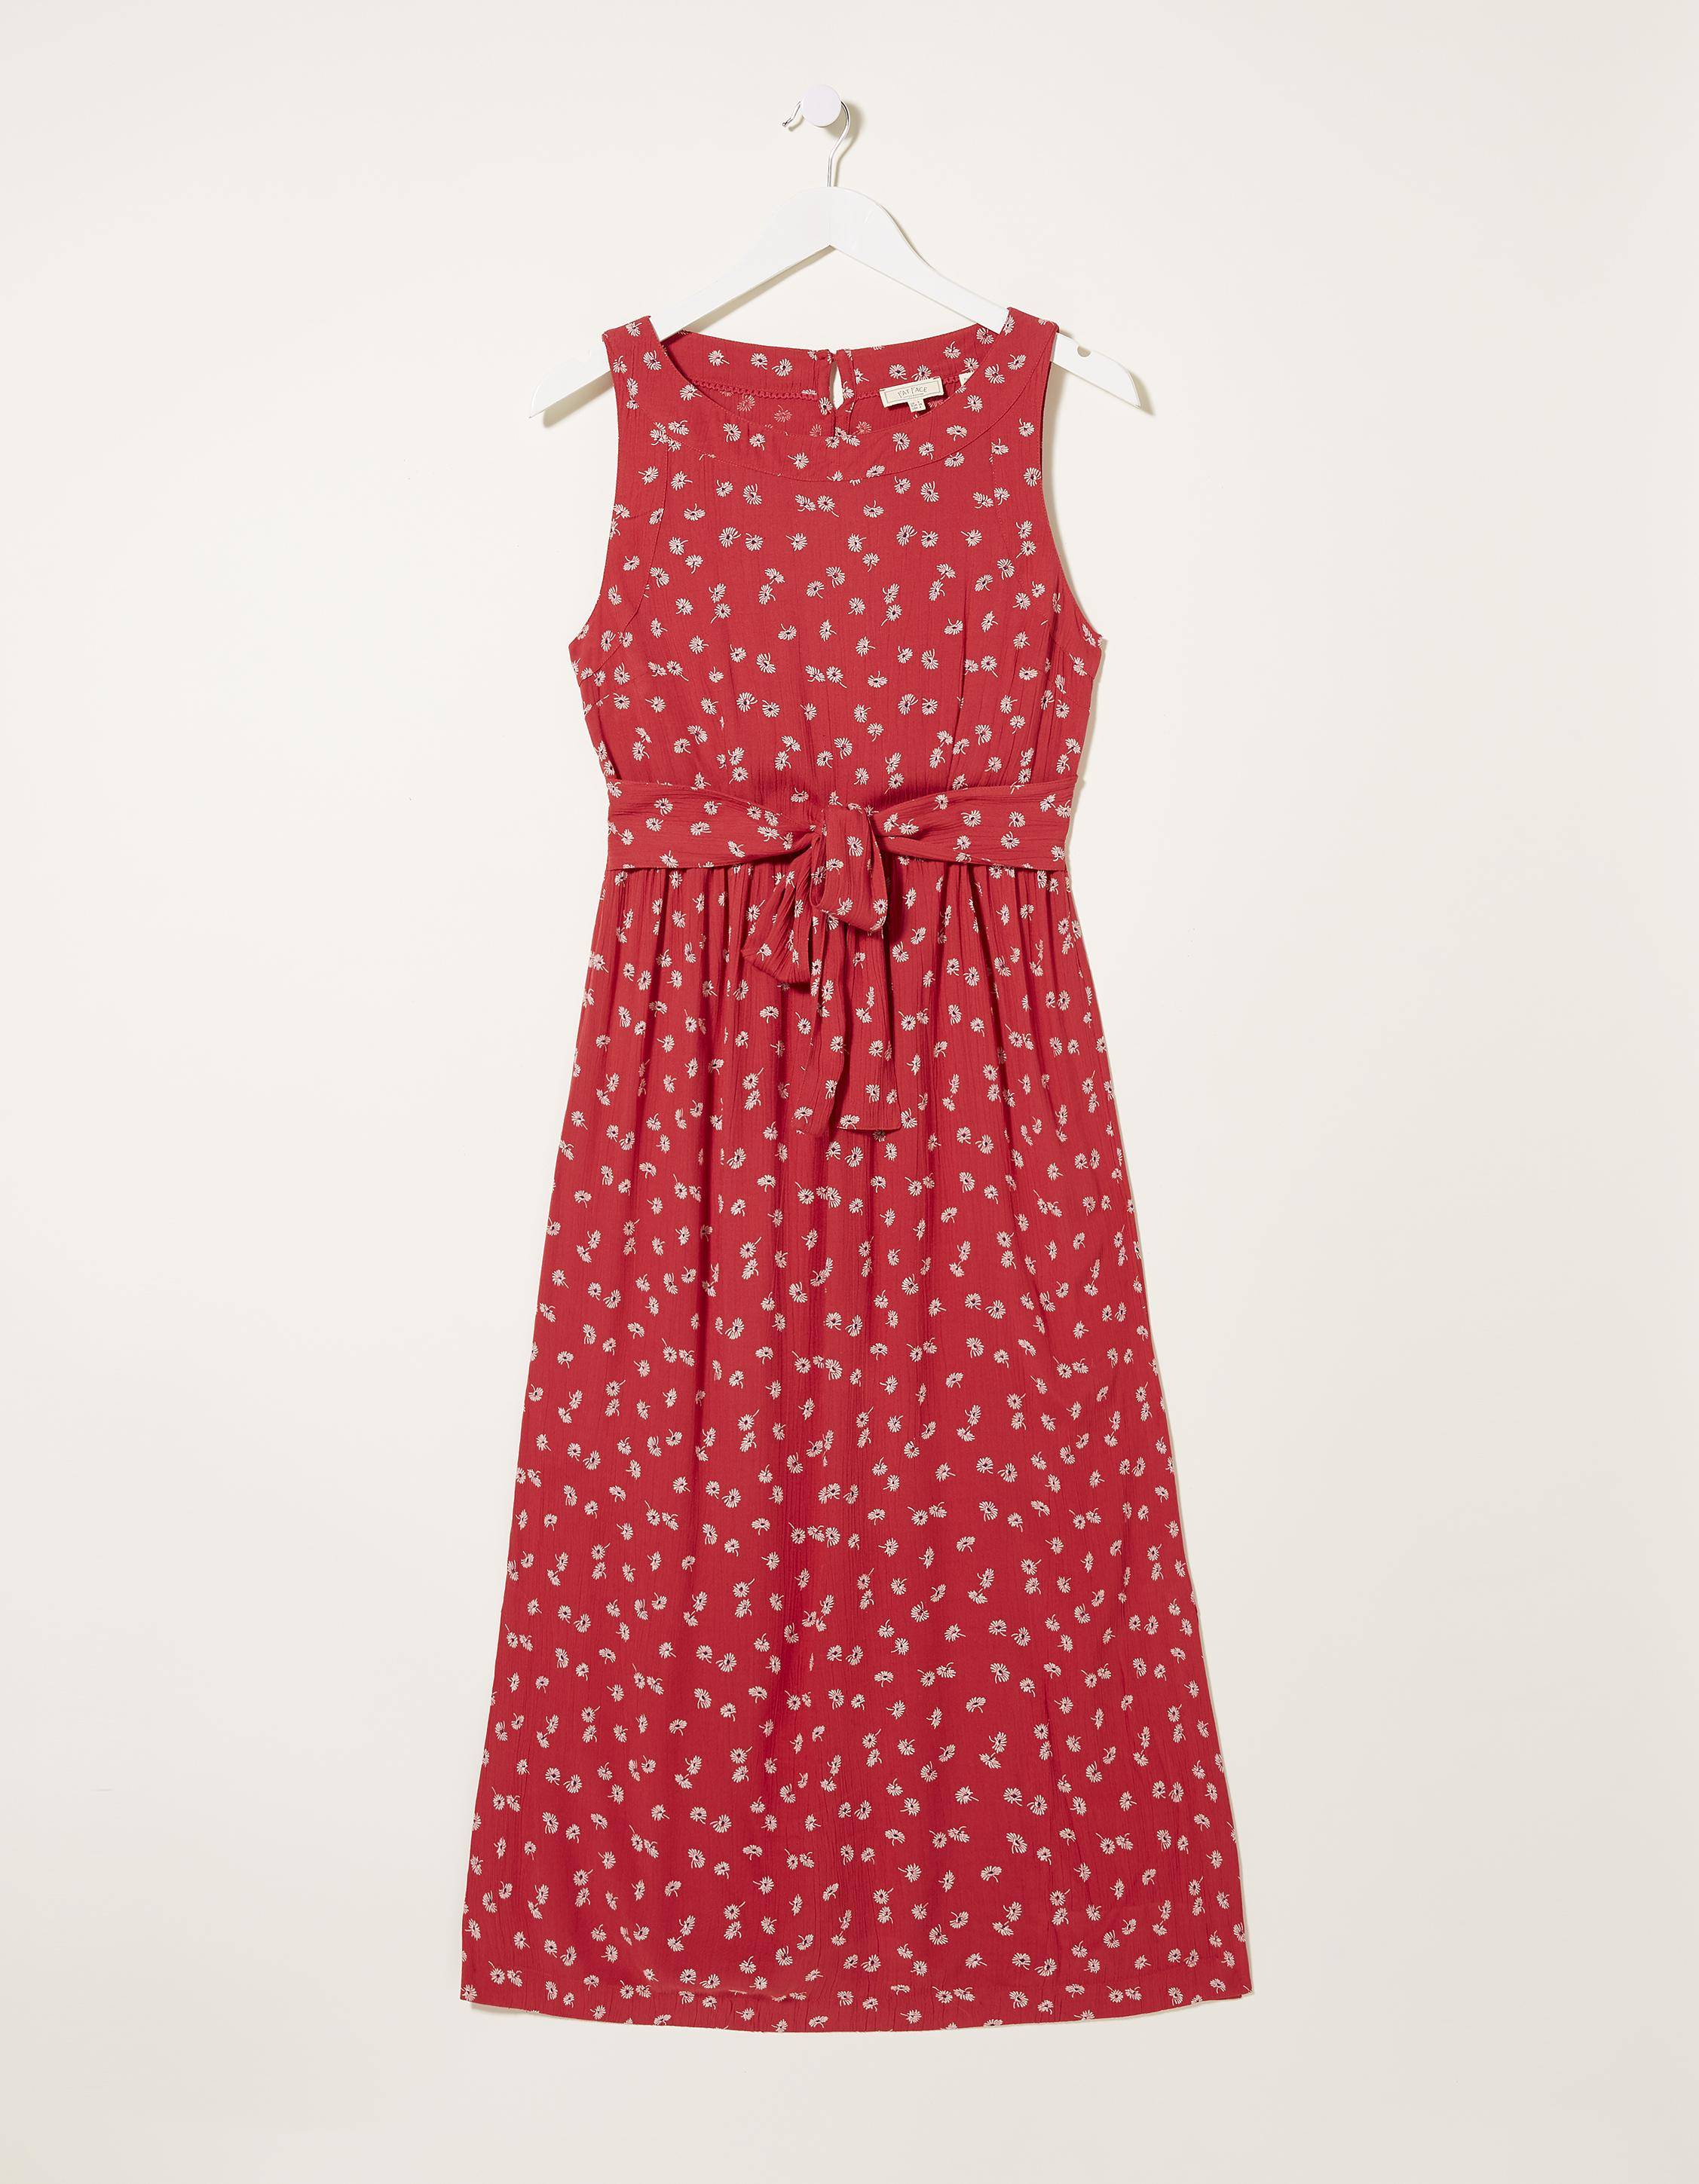 Fat Face Laurie Daisy Midi Dress  - Size: 2